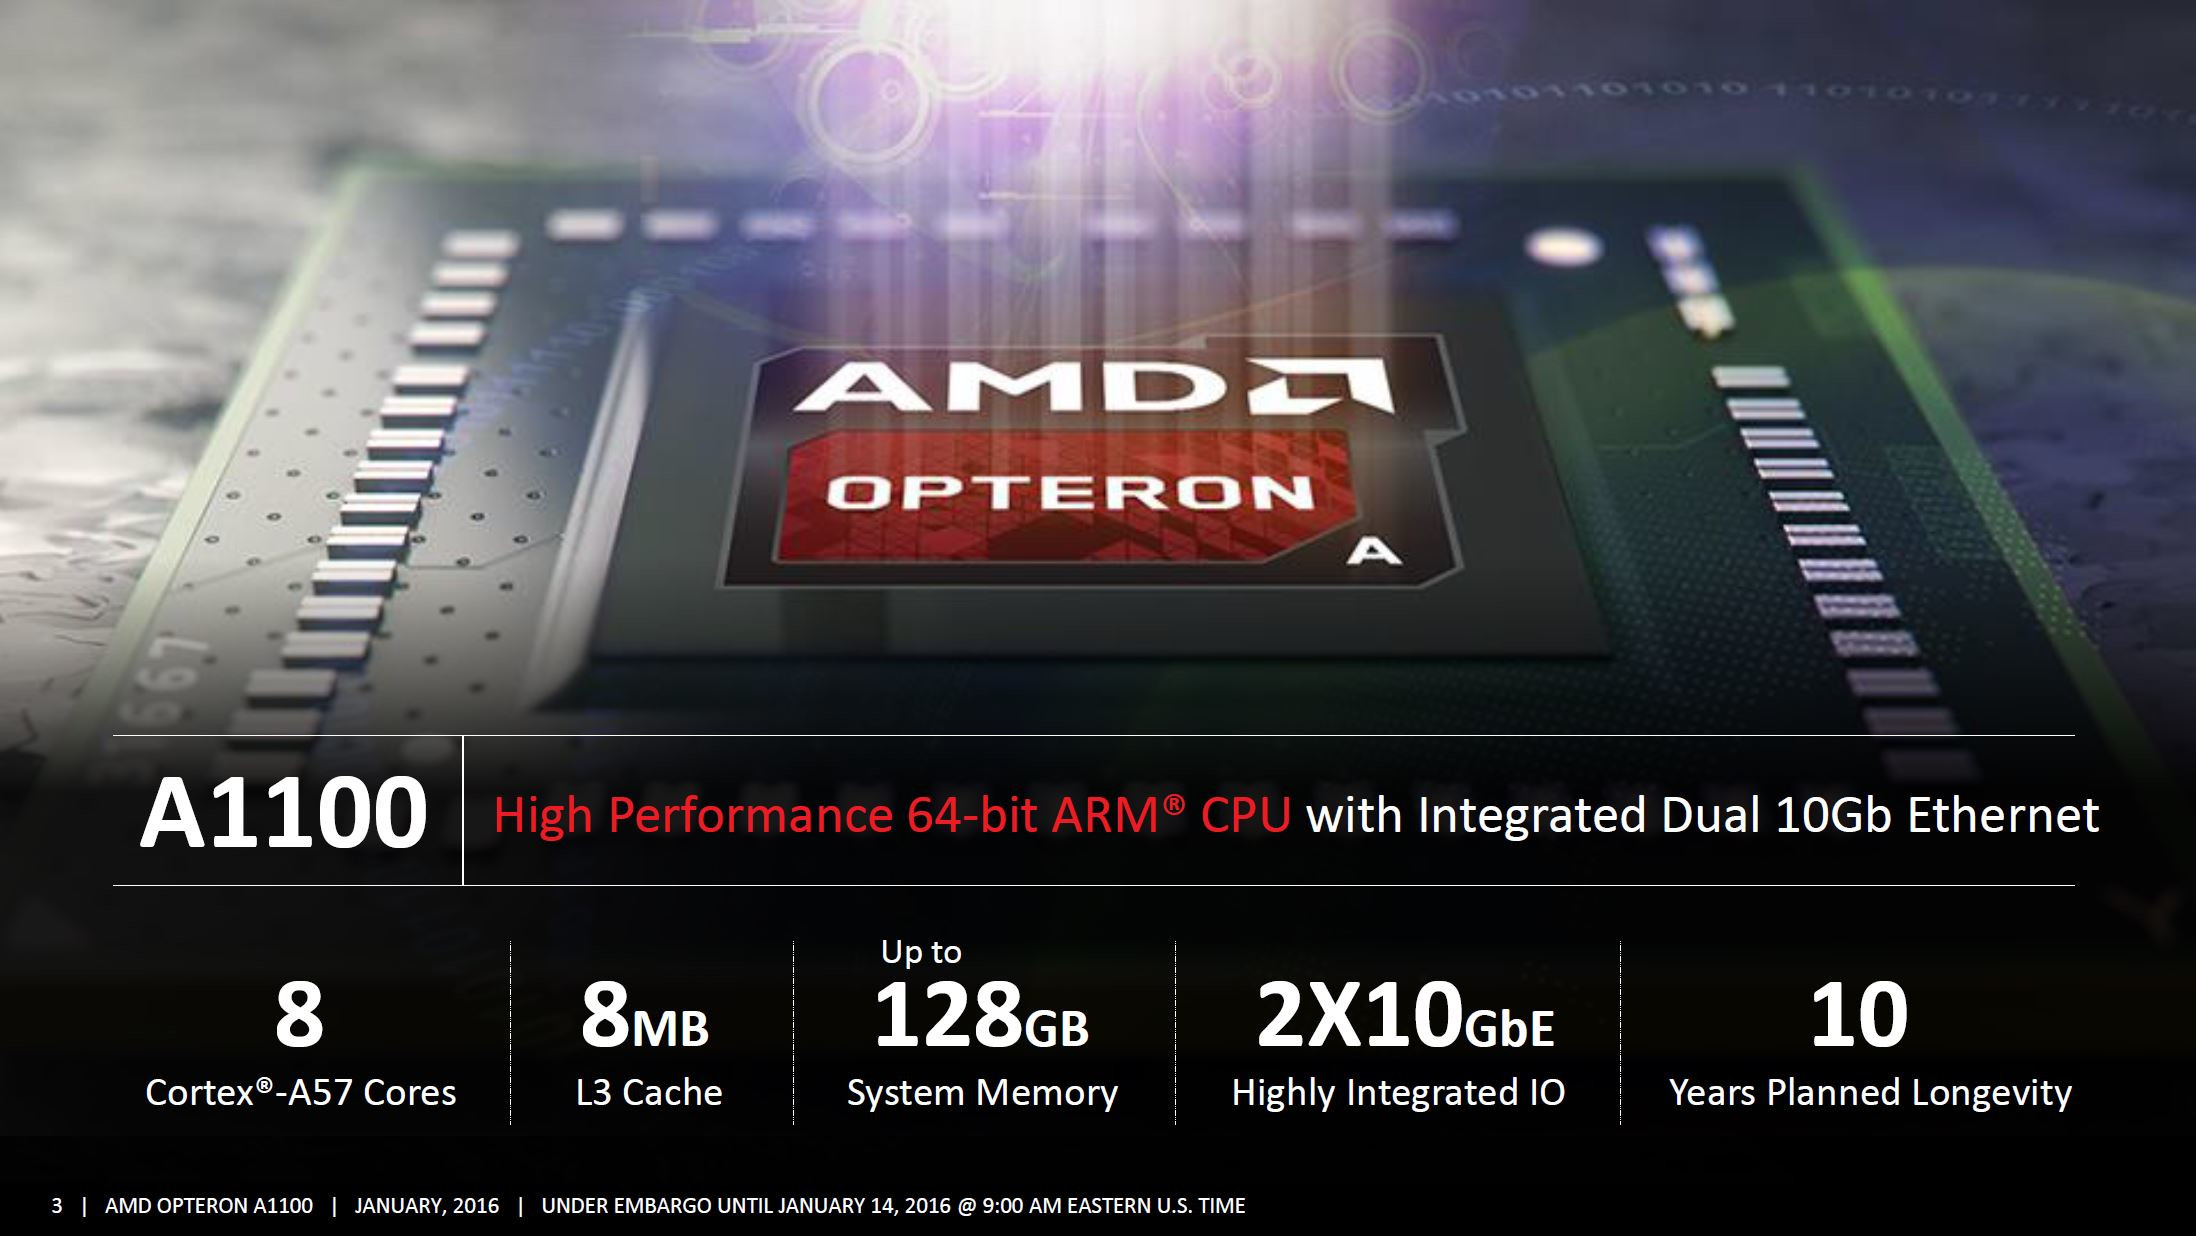 Amd Launches Arm Based Opteron A1100 Socs For Datacenter Seattle Comes With Up To 8 A 57 Cores And Ddr4 Support